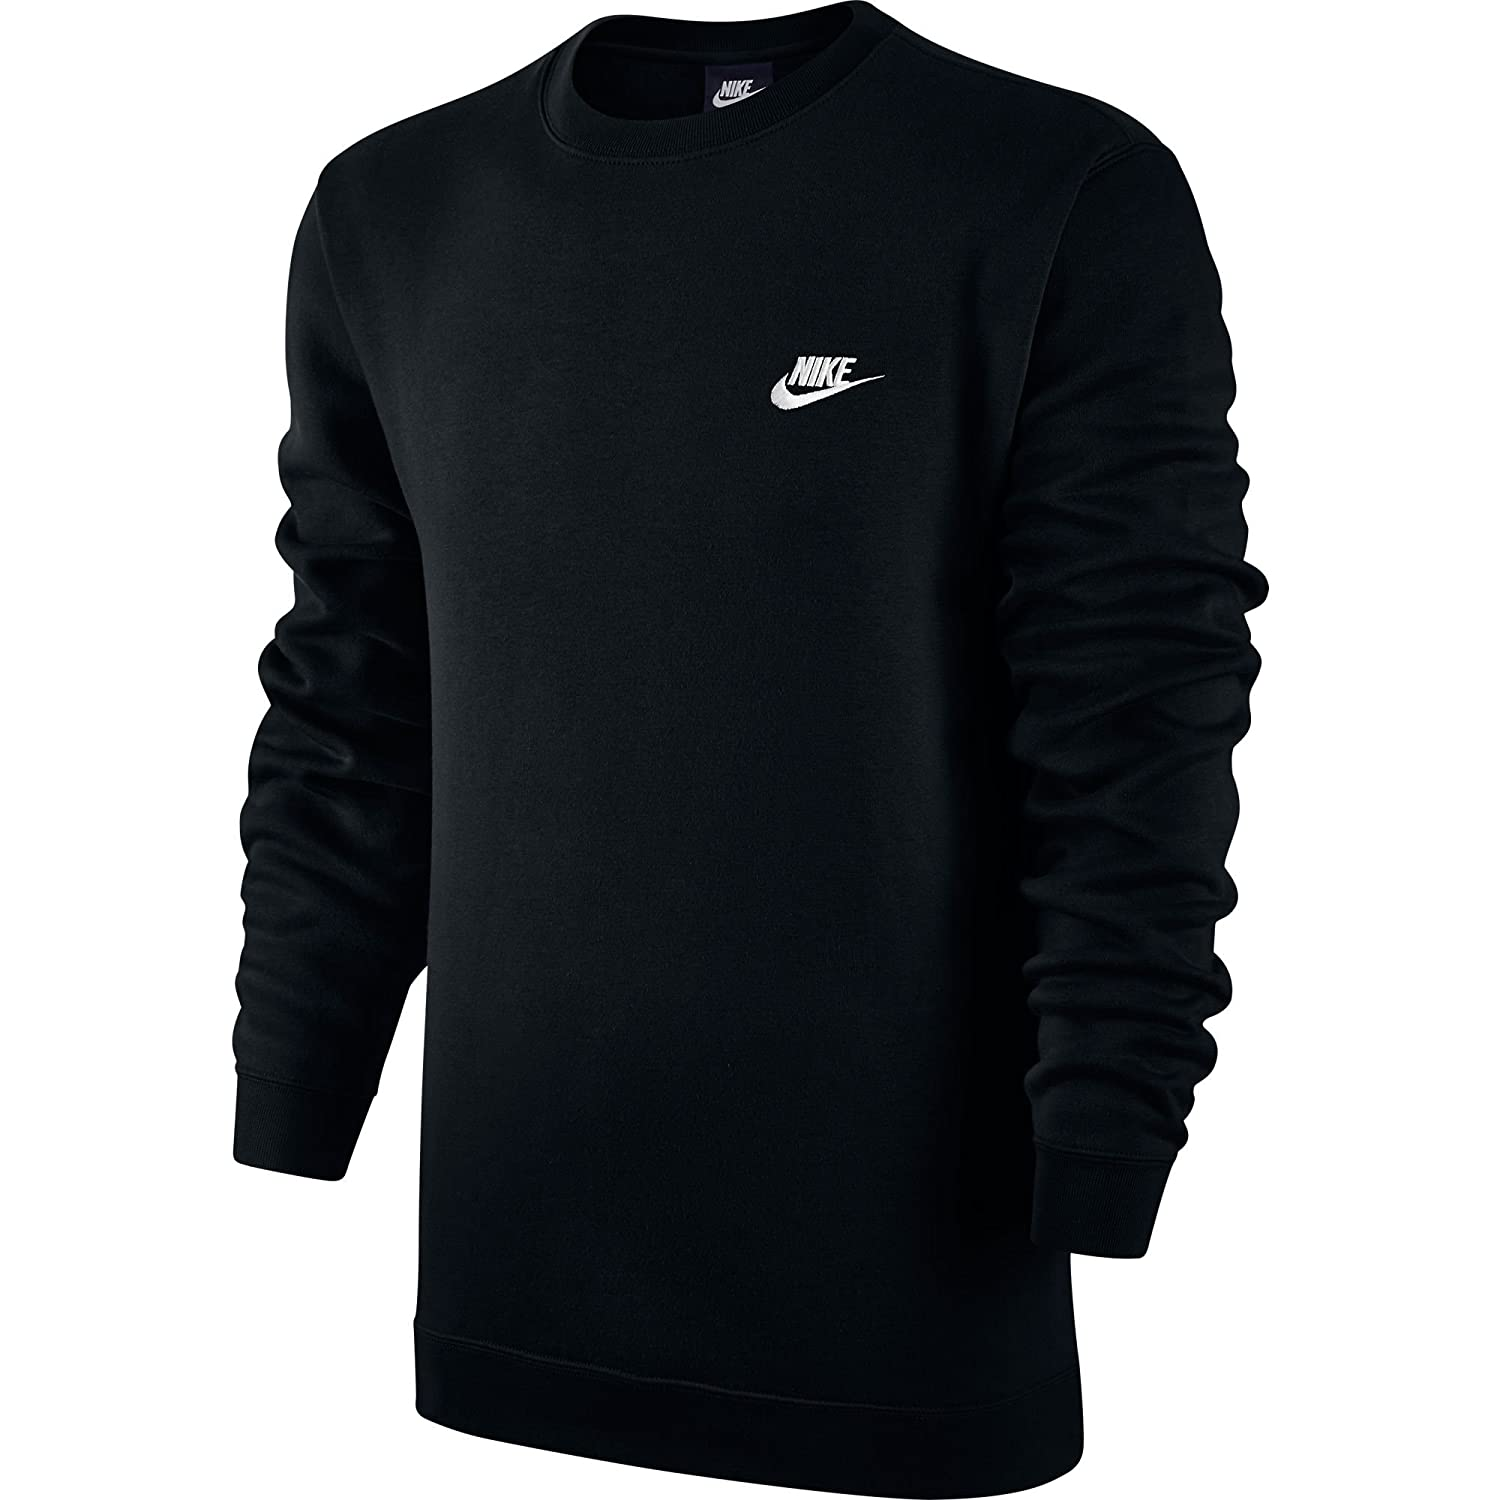 Nike M NSW Club CRW BB Long Sleeved t-Shirt, Hombre